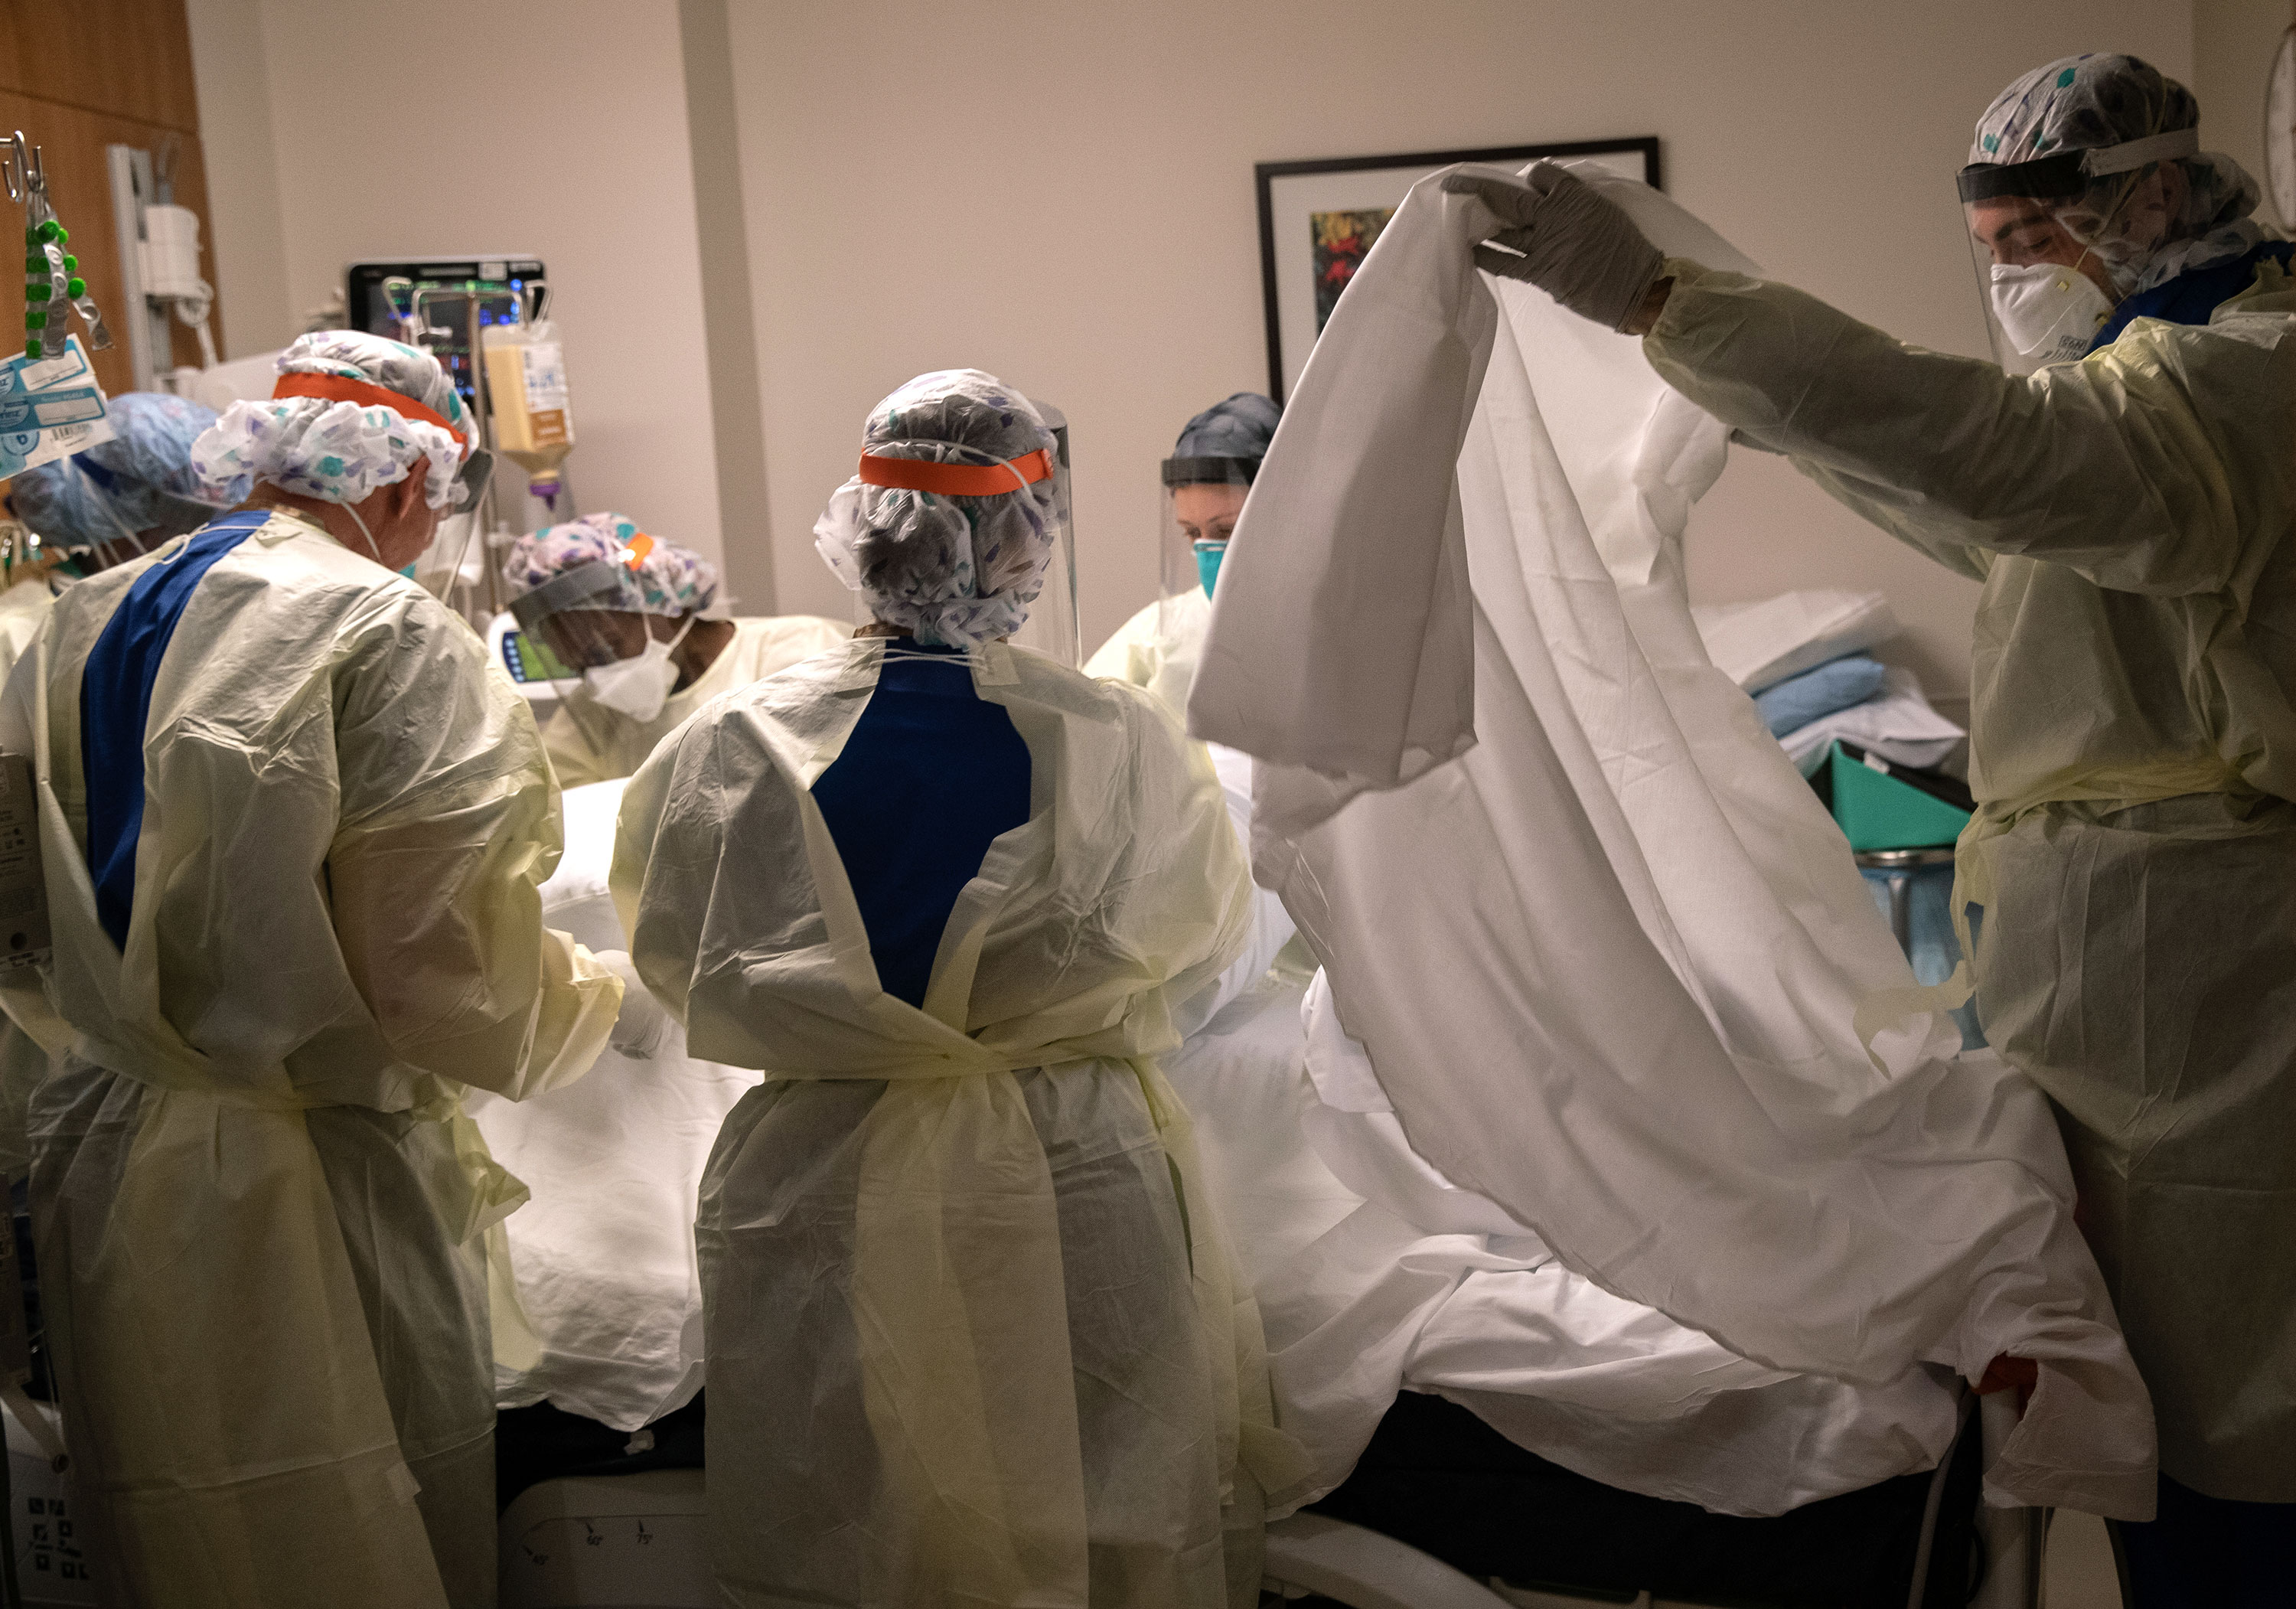 A team of health workers tend to a coronavirus patient in a Stamford Hospital intensive care unit on April 24 in Stamford, Connecticut.